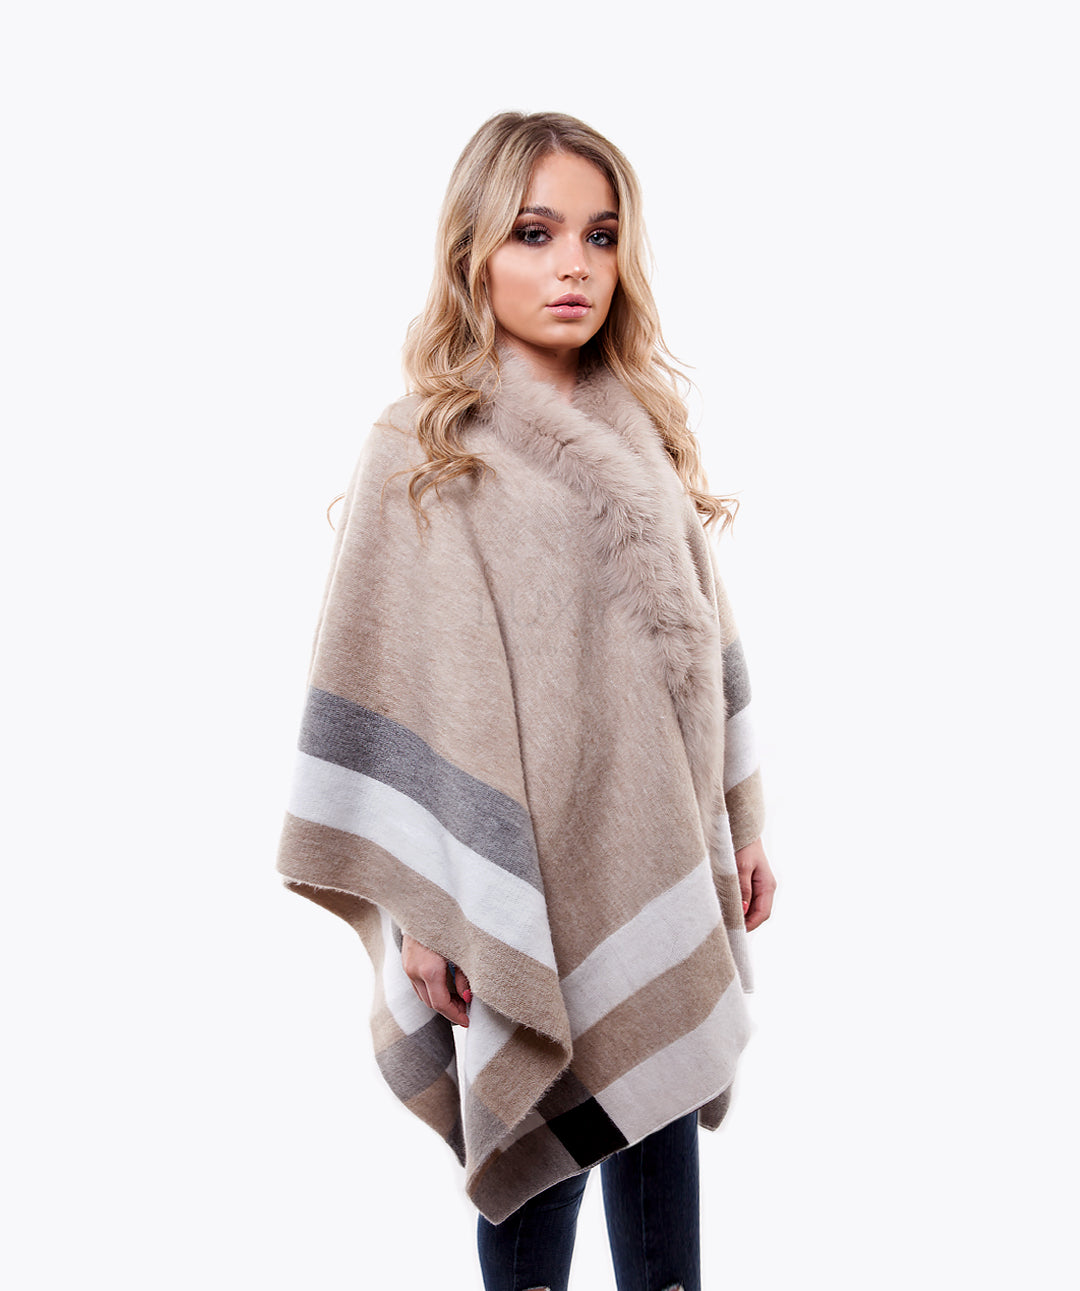 Wool & Fox Fur Cape - Oatmeal